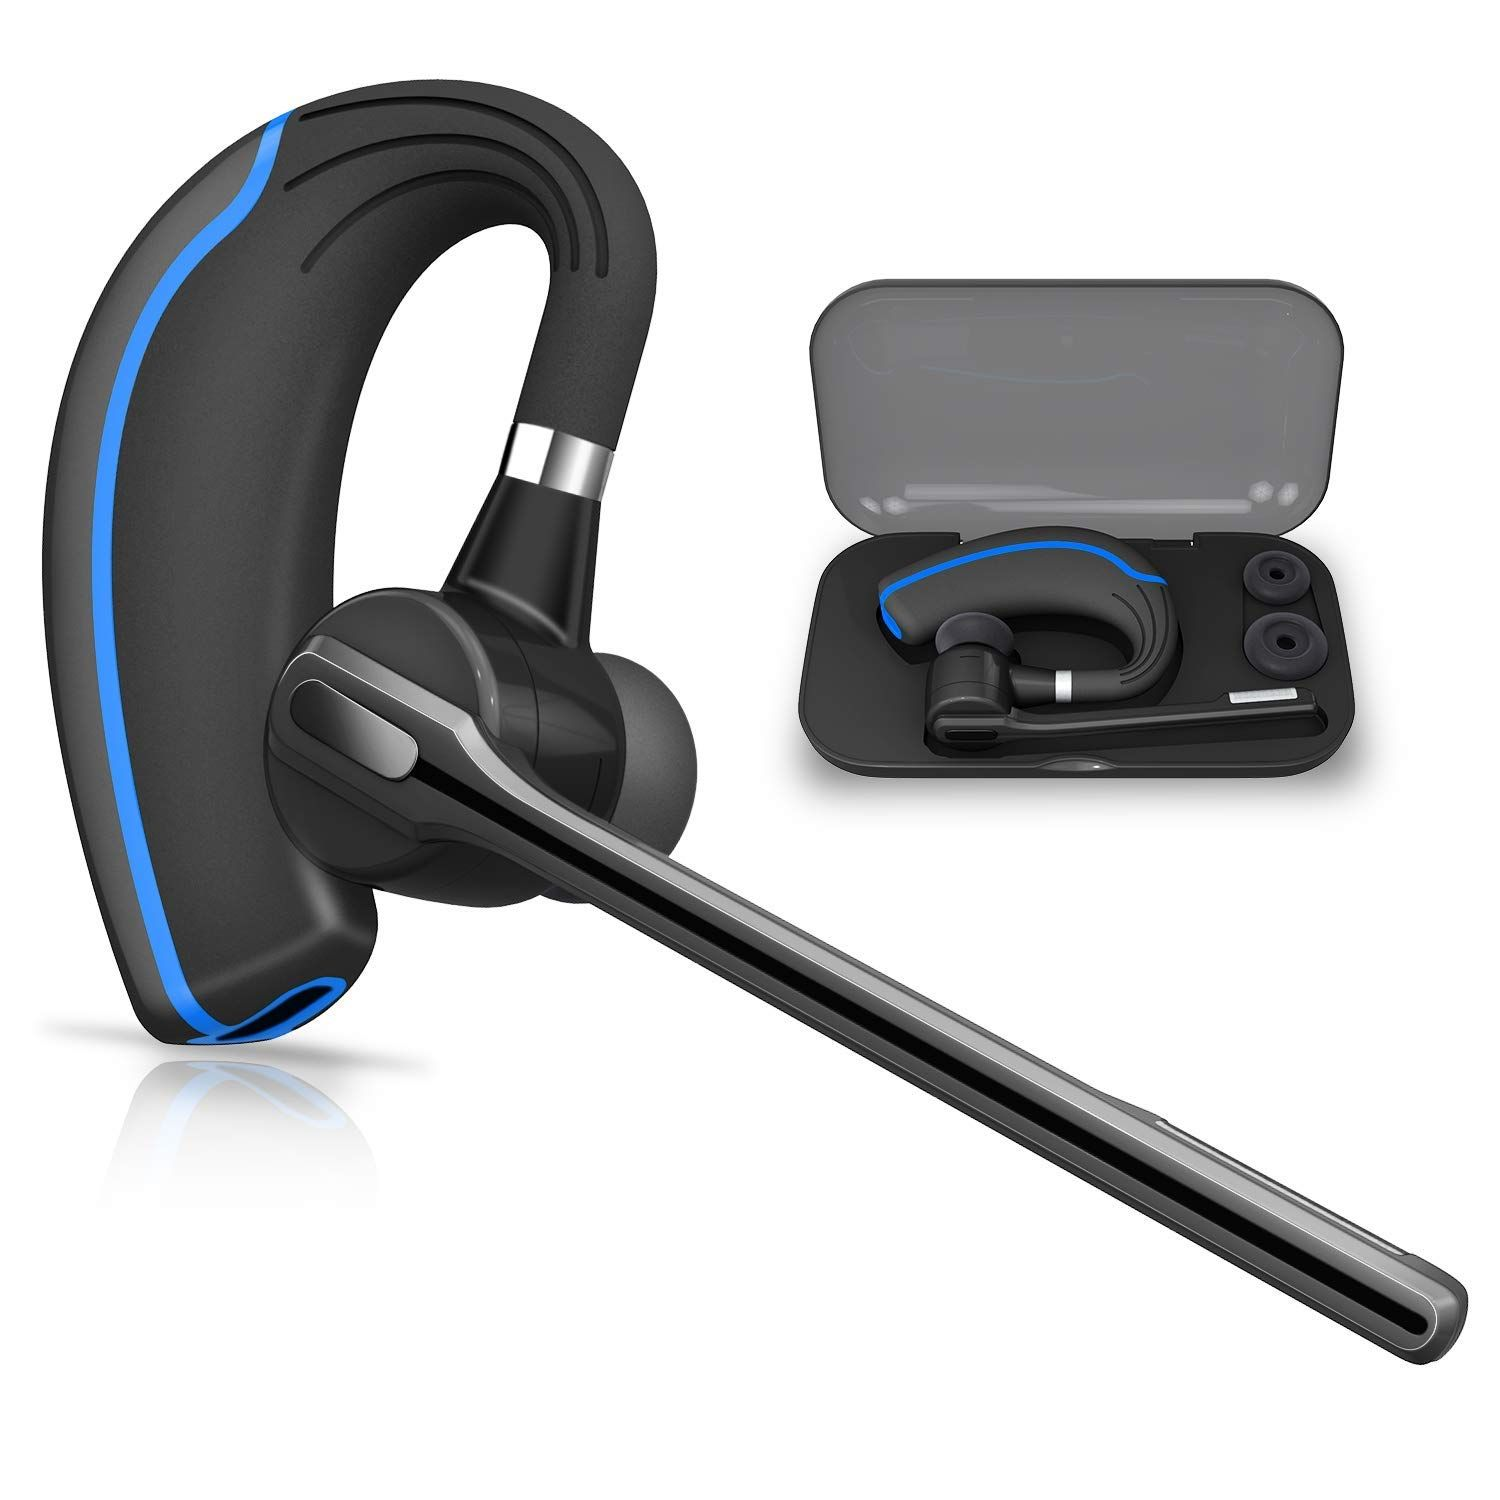 17ddd6907bf Bluetooth Headset HONSHOOP Bluetooth 5.0 in Ear Bluetooth Earpiece Wireless  Headphones Noise Reduction Earphones with Mic for Business/Workout/Driving  Blue ...